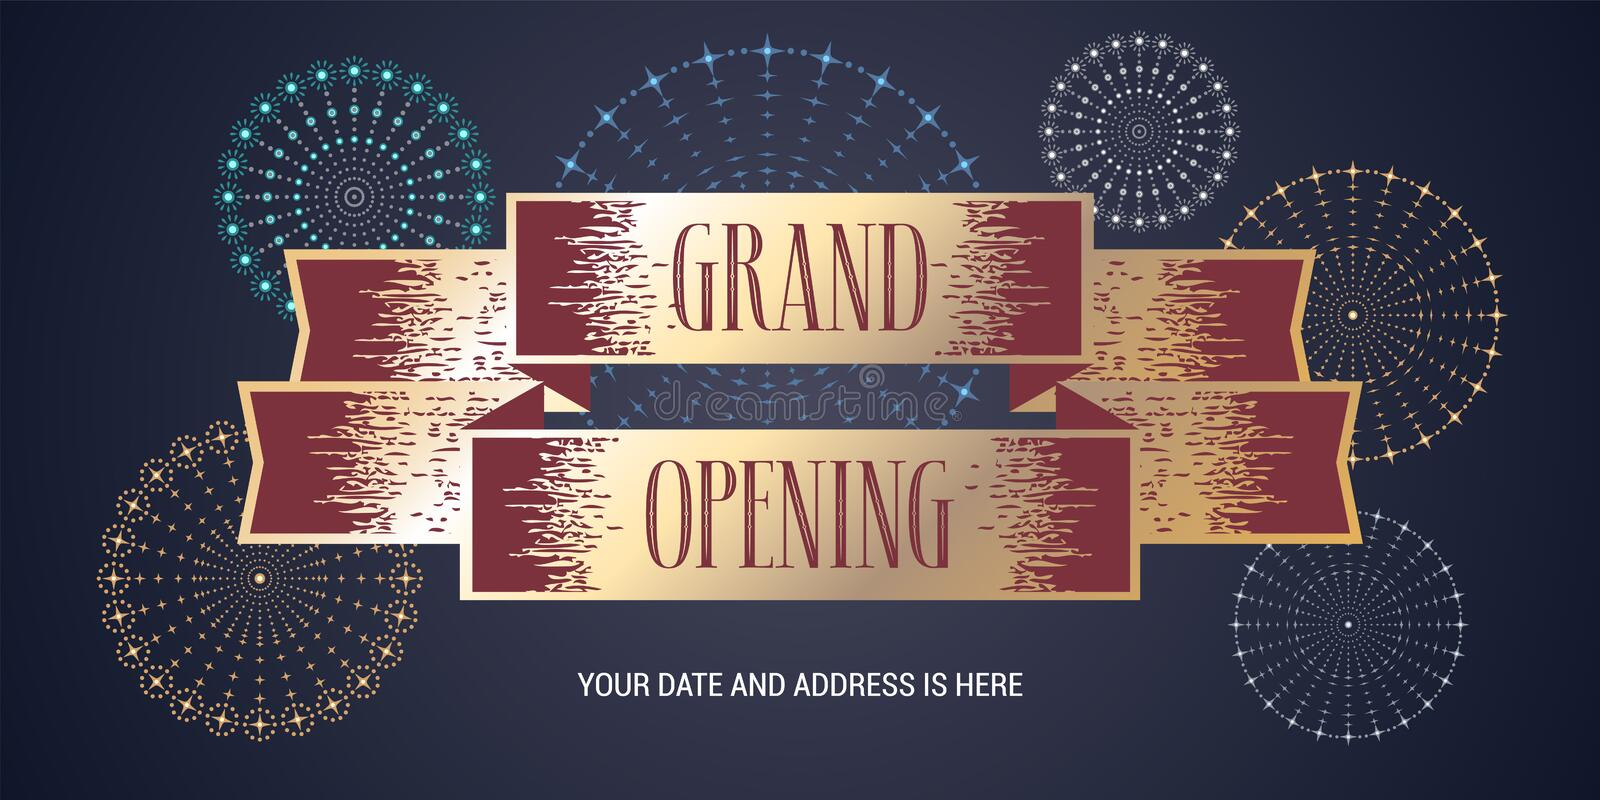 Grand opening banner. Template festive design element with fireworks for opening ceremony can be used as background or poster stock illustration